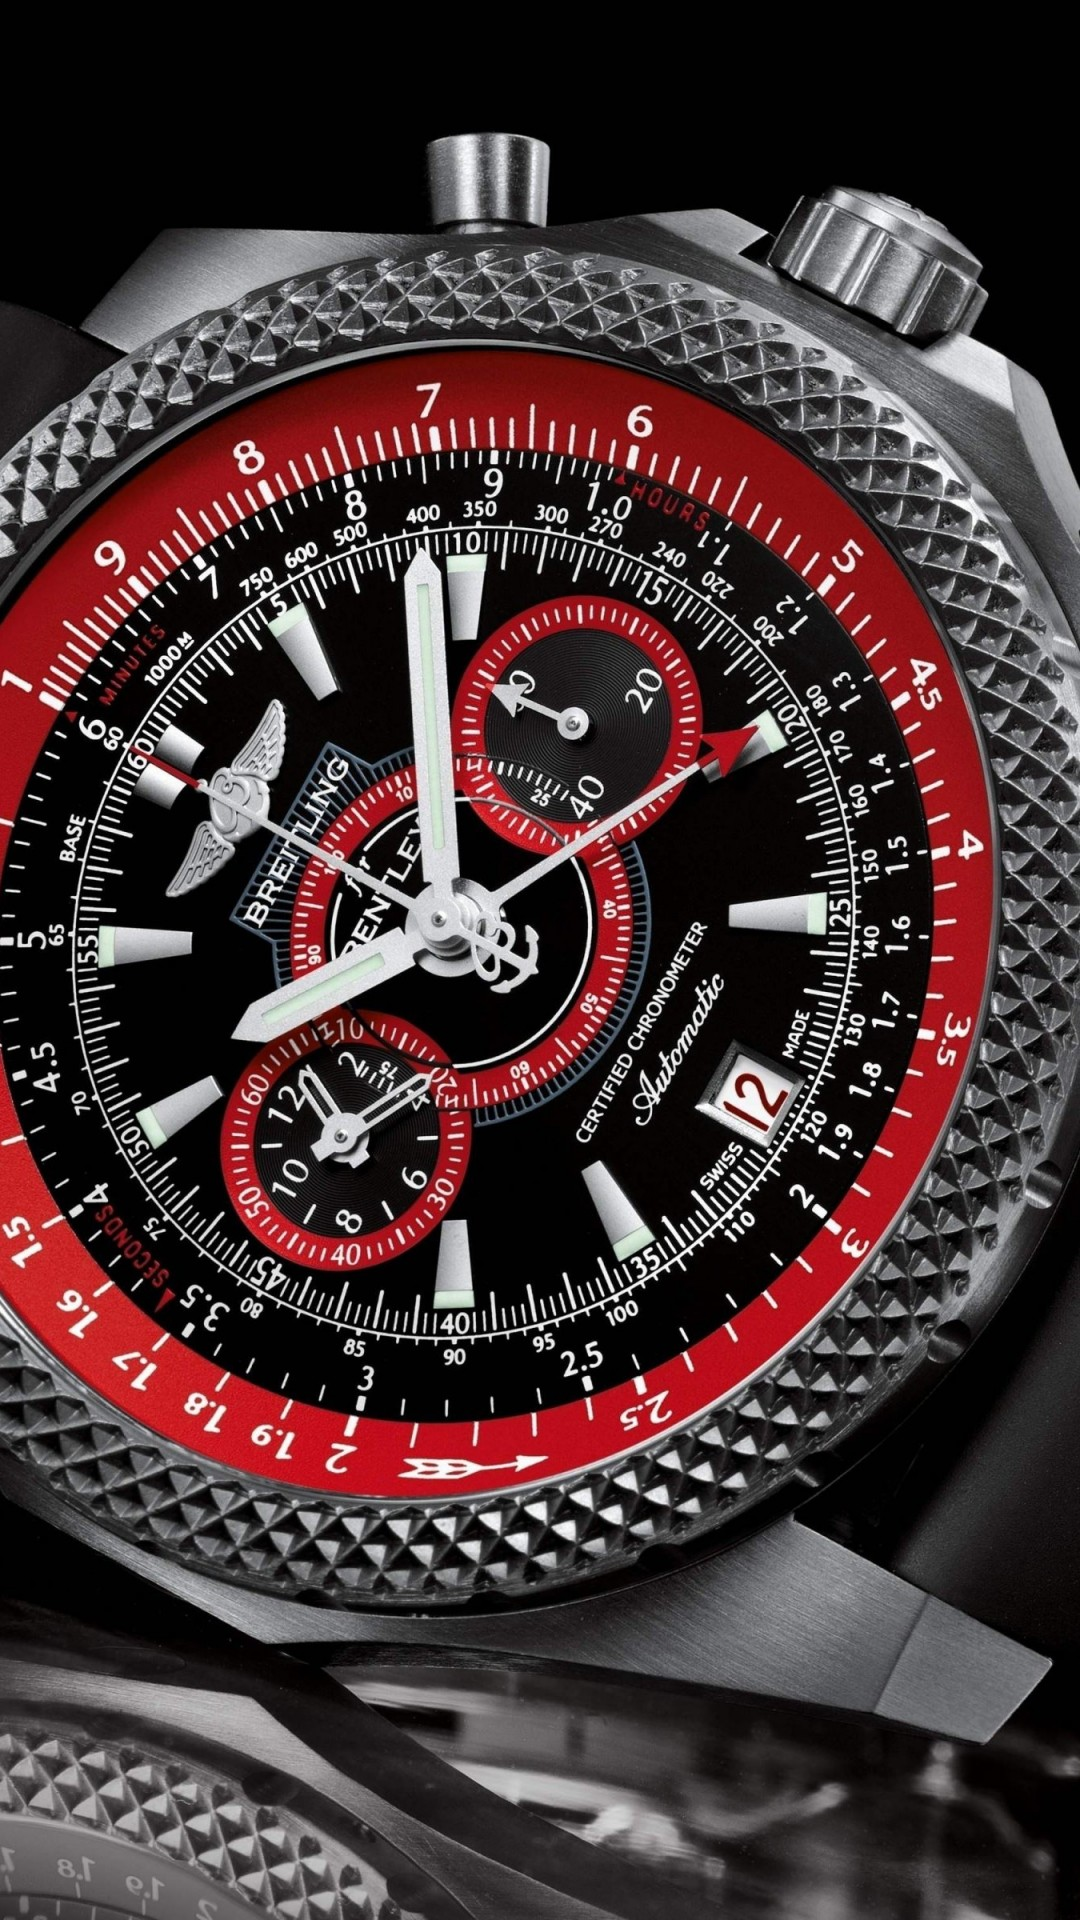 Breitling Watch Wallpaper for Motorola Moto X